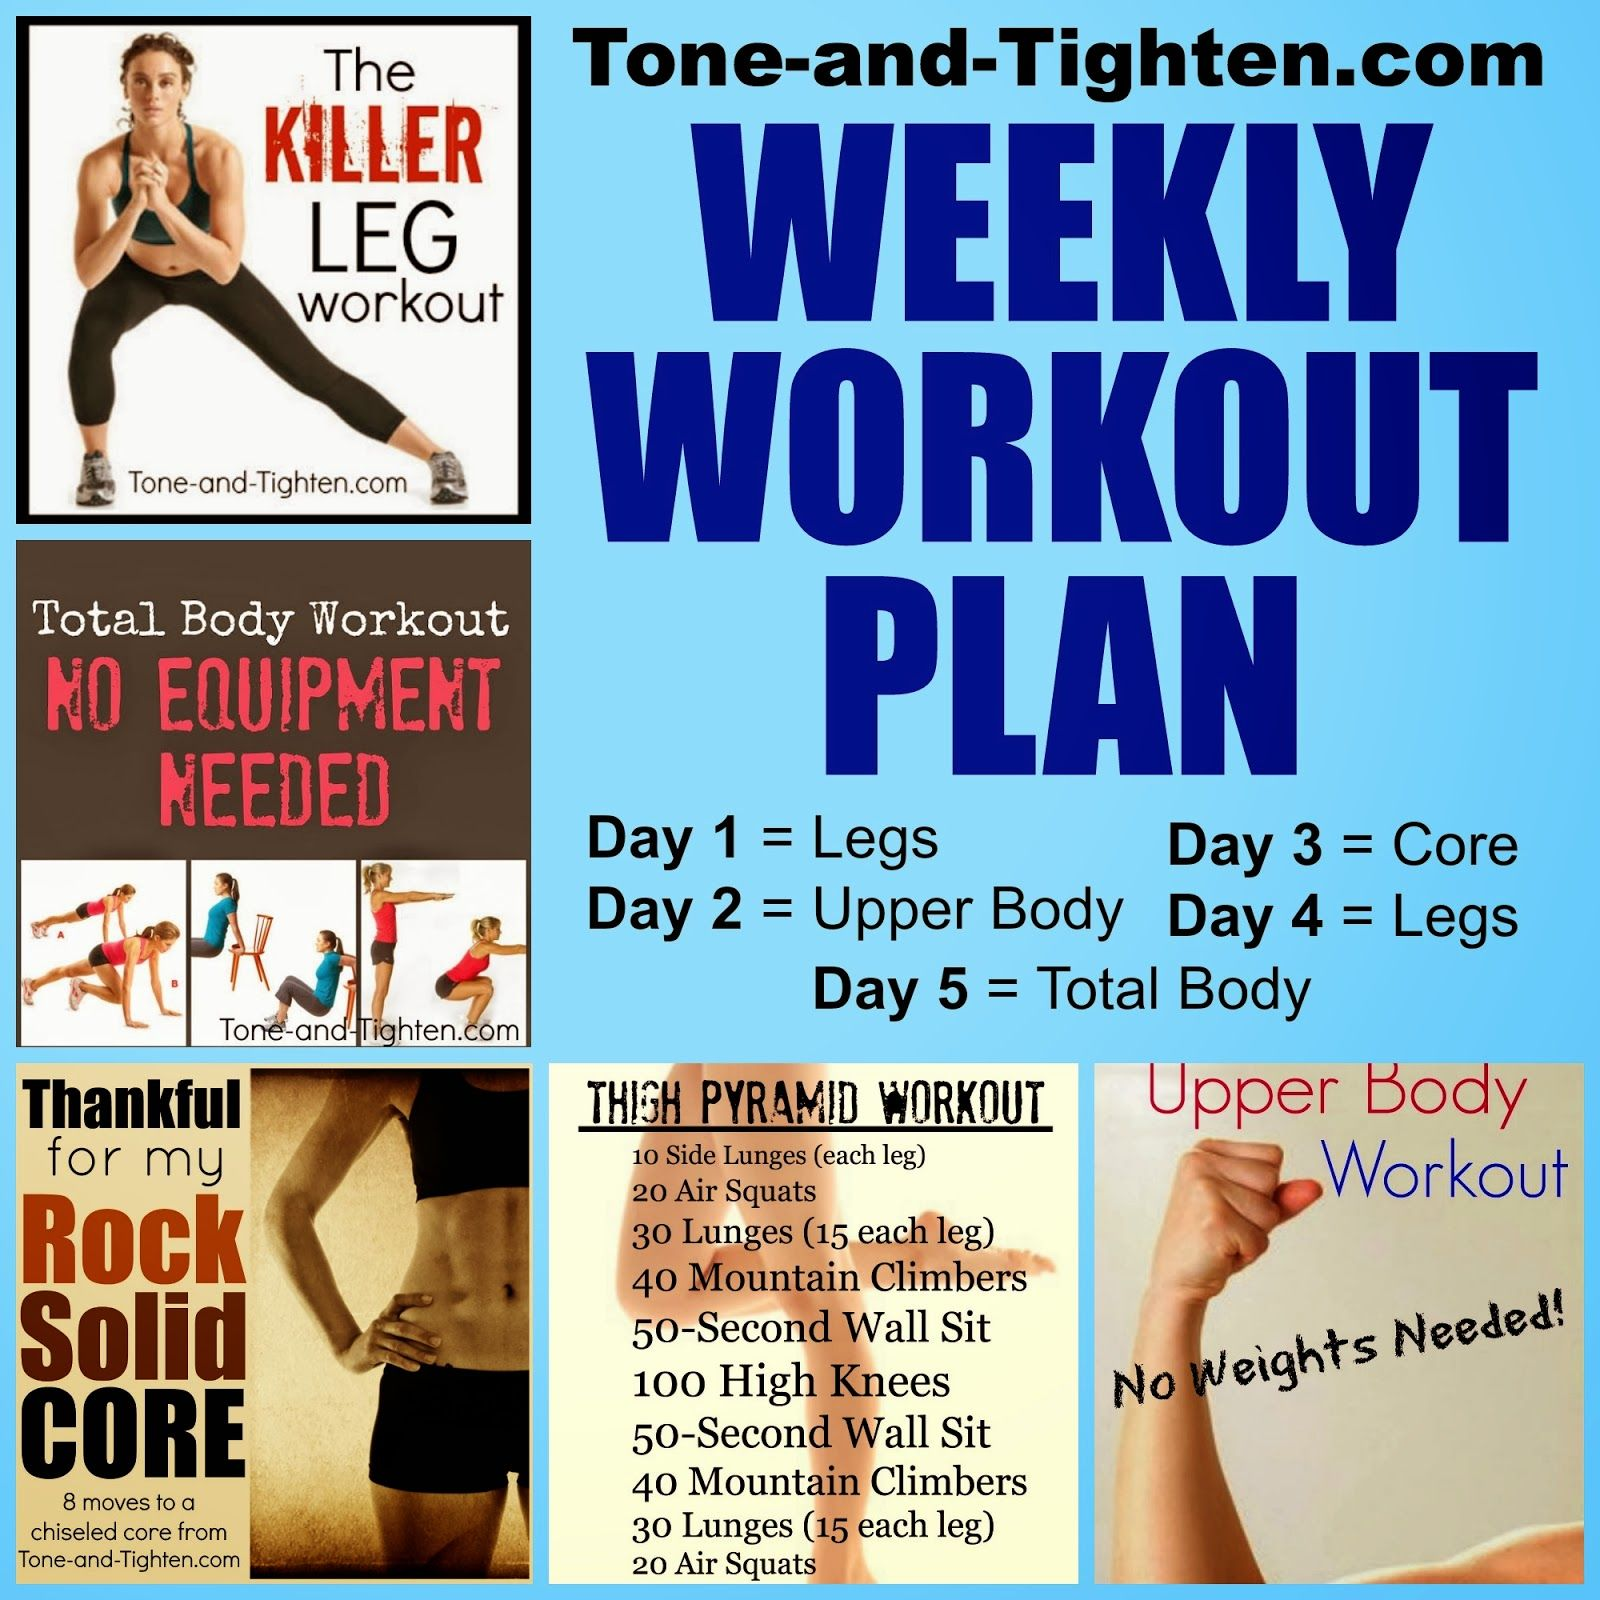 Body Shred From Toe To Head Weekly Workout Plan On ToneAnd